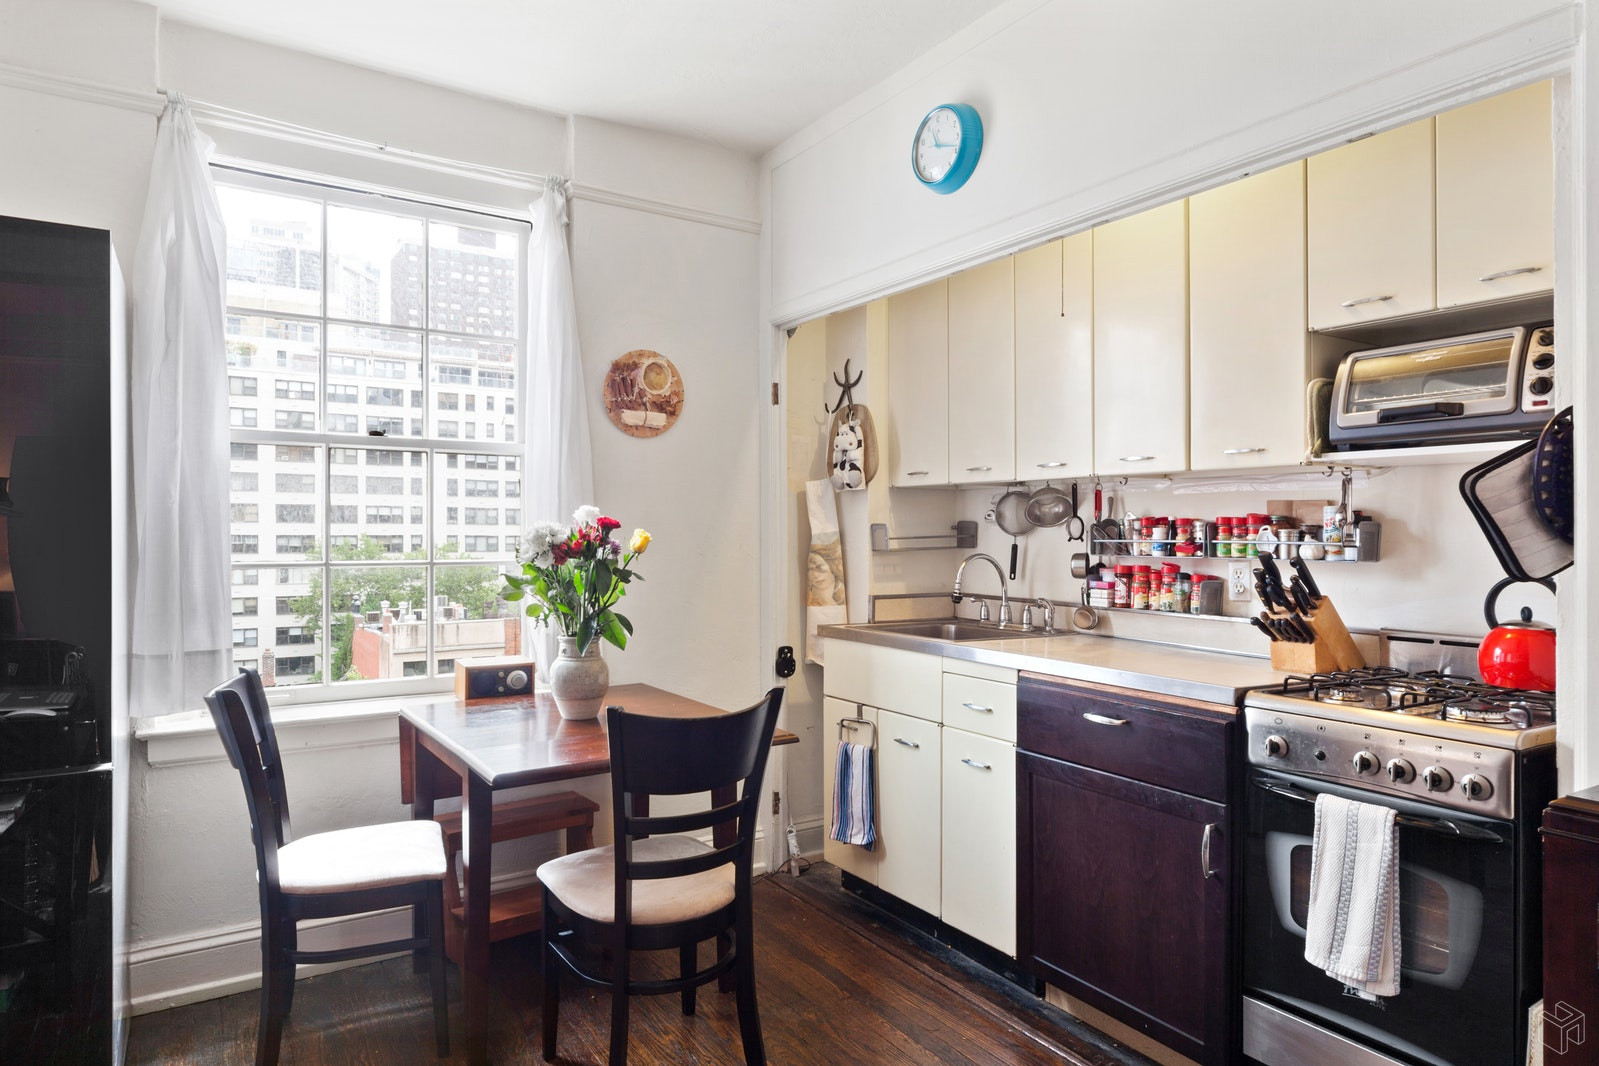 1 Bdr Beekman COOP-WBFP, Low Maintenance, Midtown East, NYC, 10017, $509,000, Property For Sale, Halstead Real Estate, Photo 2